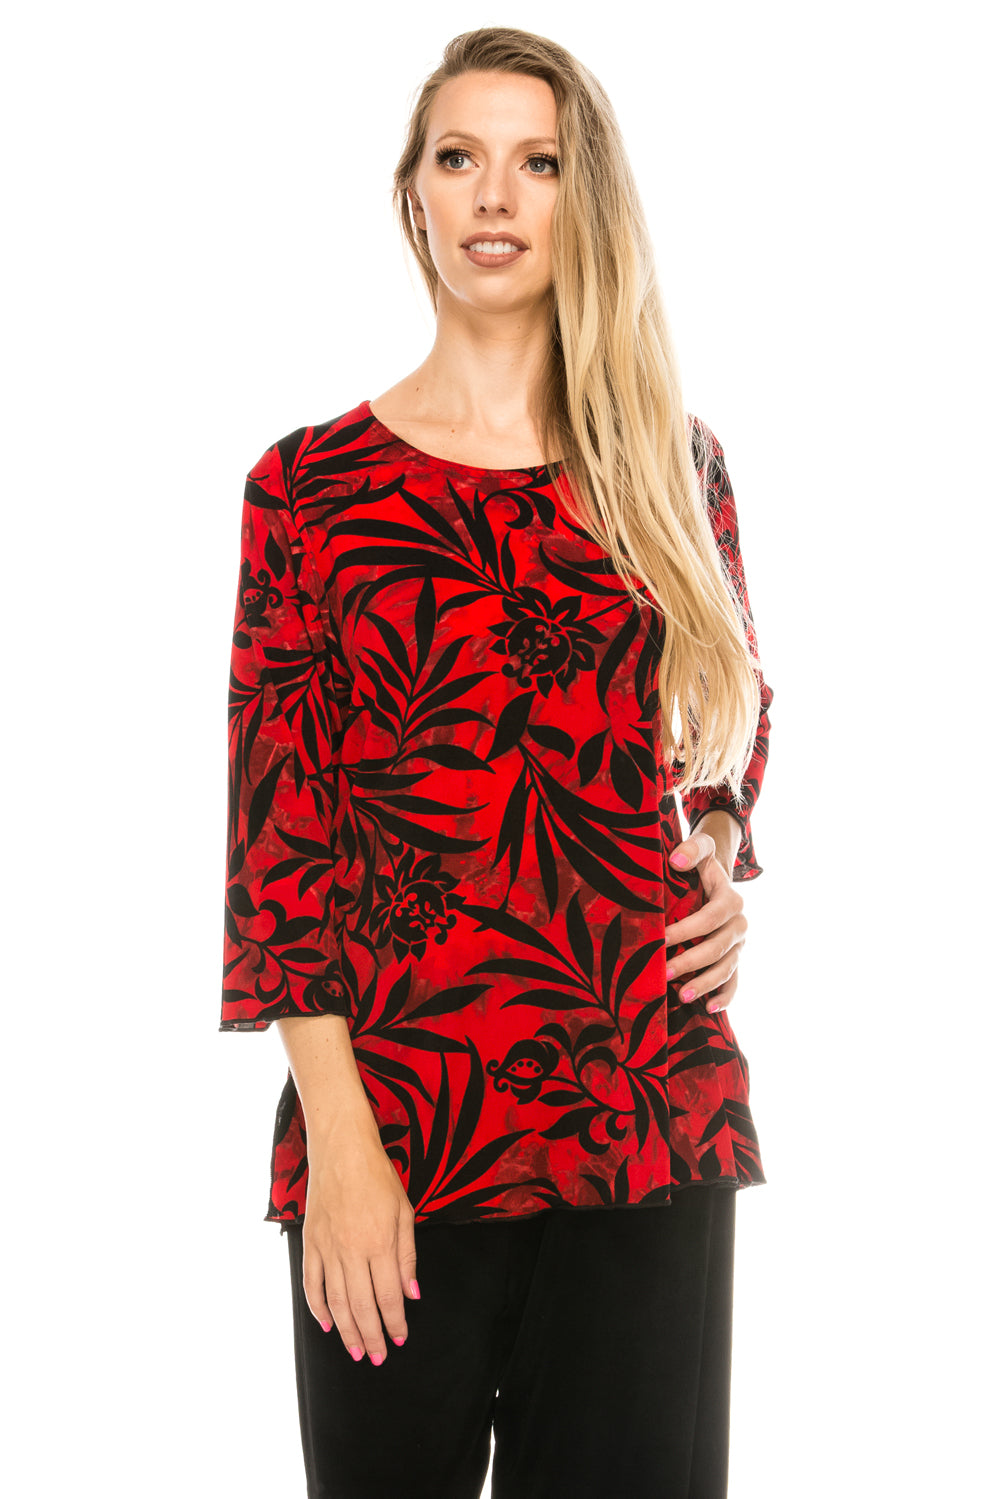 Jostar Women's Stretchy Merrow Top 3/4 Sleeve Print Plus, 158BN-QXP-W173 - Jostar Online